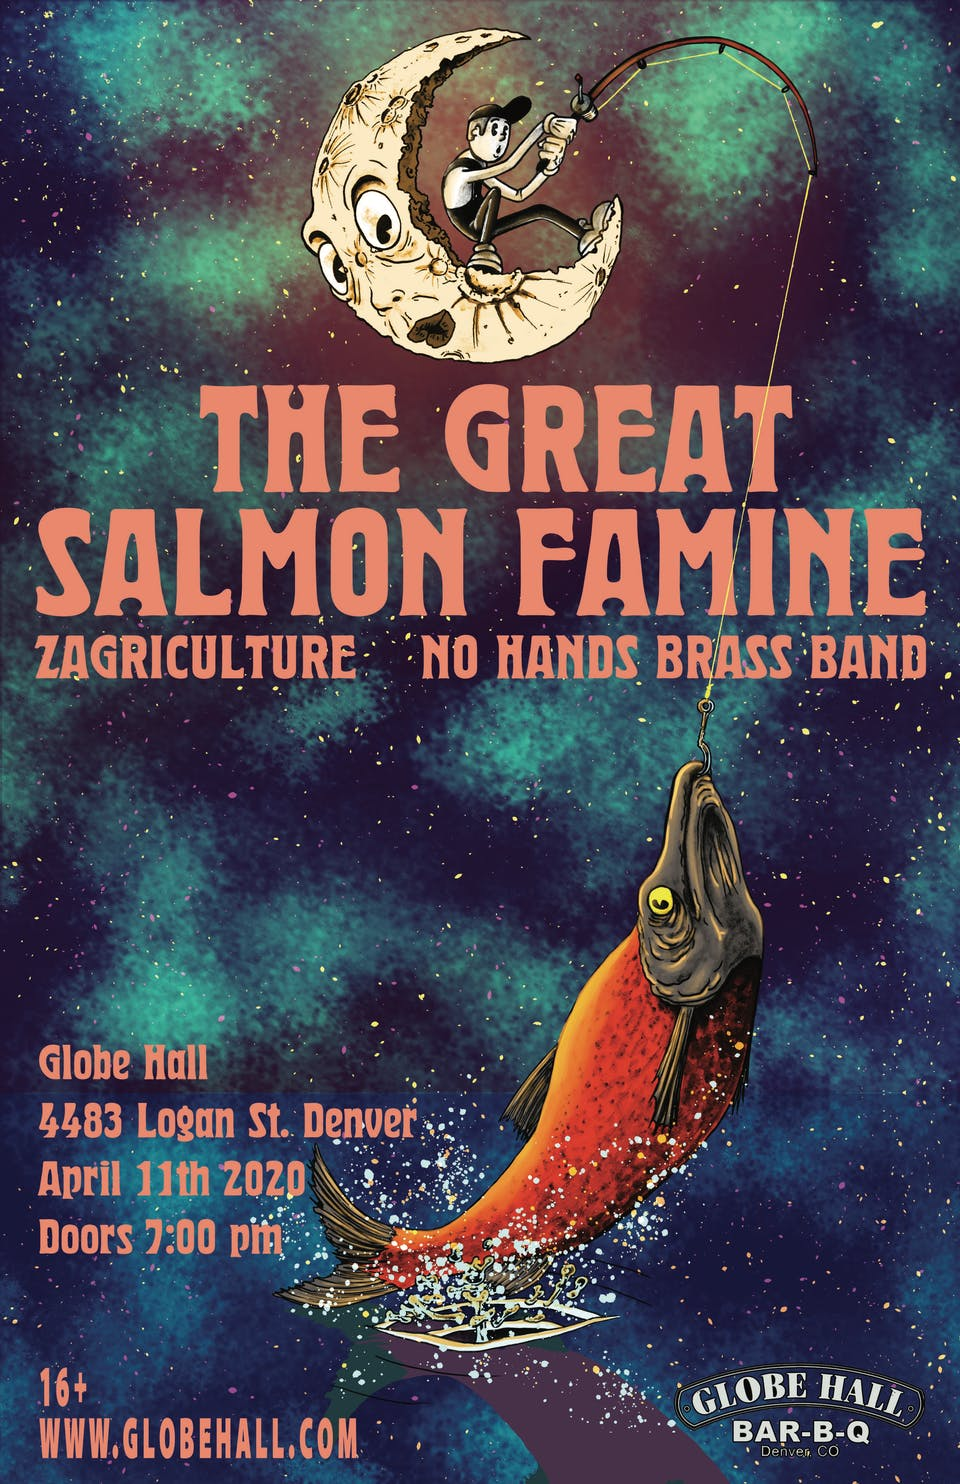 The Great Salmon Famine